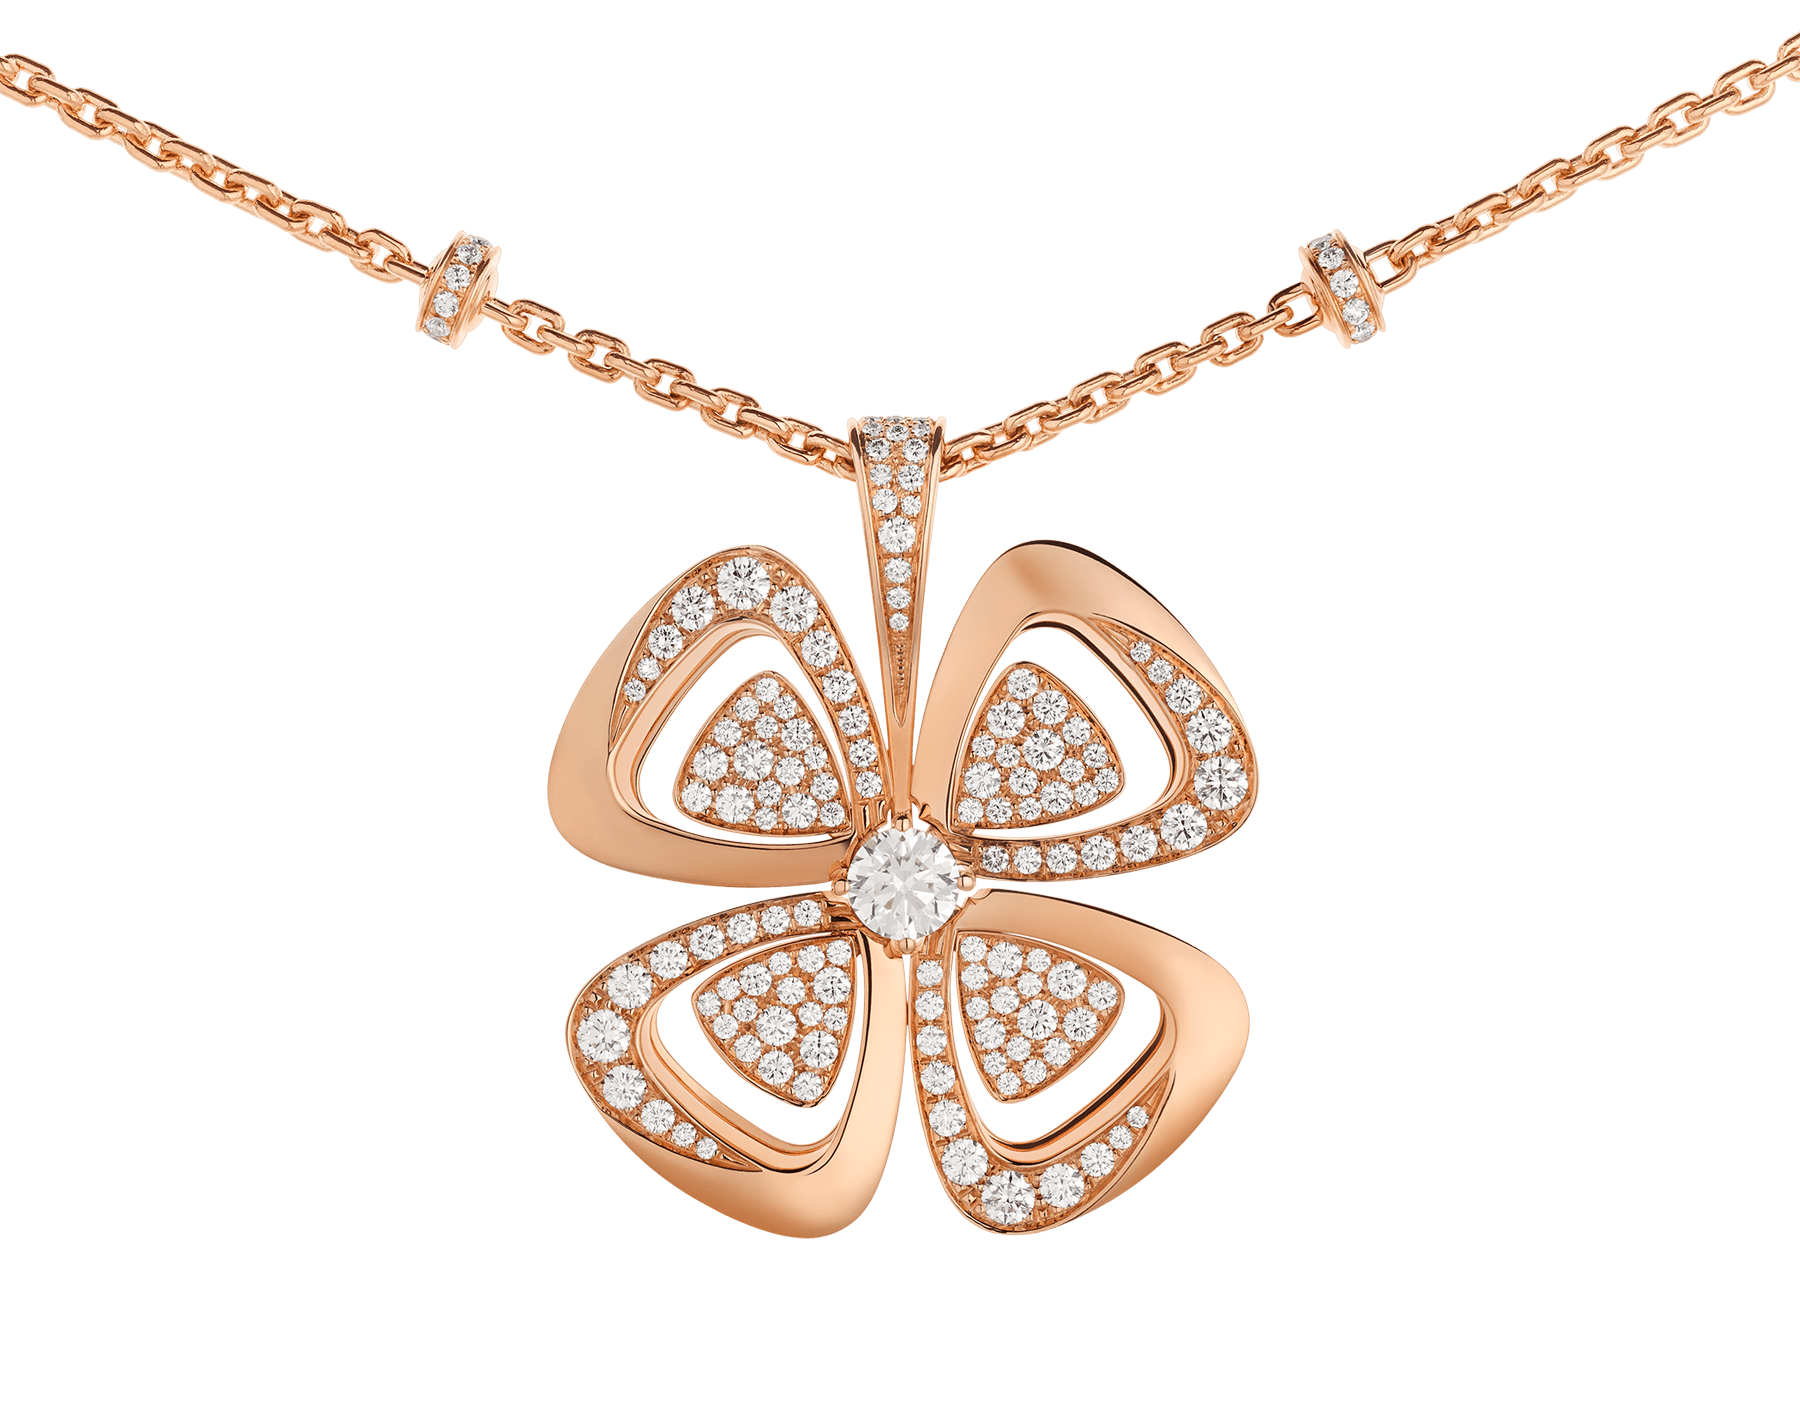 Fiorever 18 kt rose gold necklace set with a central round brilliant-cut diamond (0.70 ct) and pavé diamonds (3.55 ct) 357218 image 3